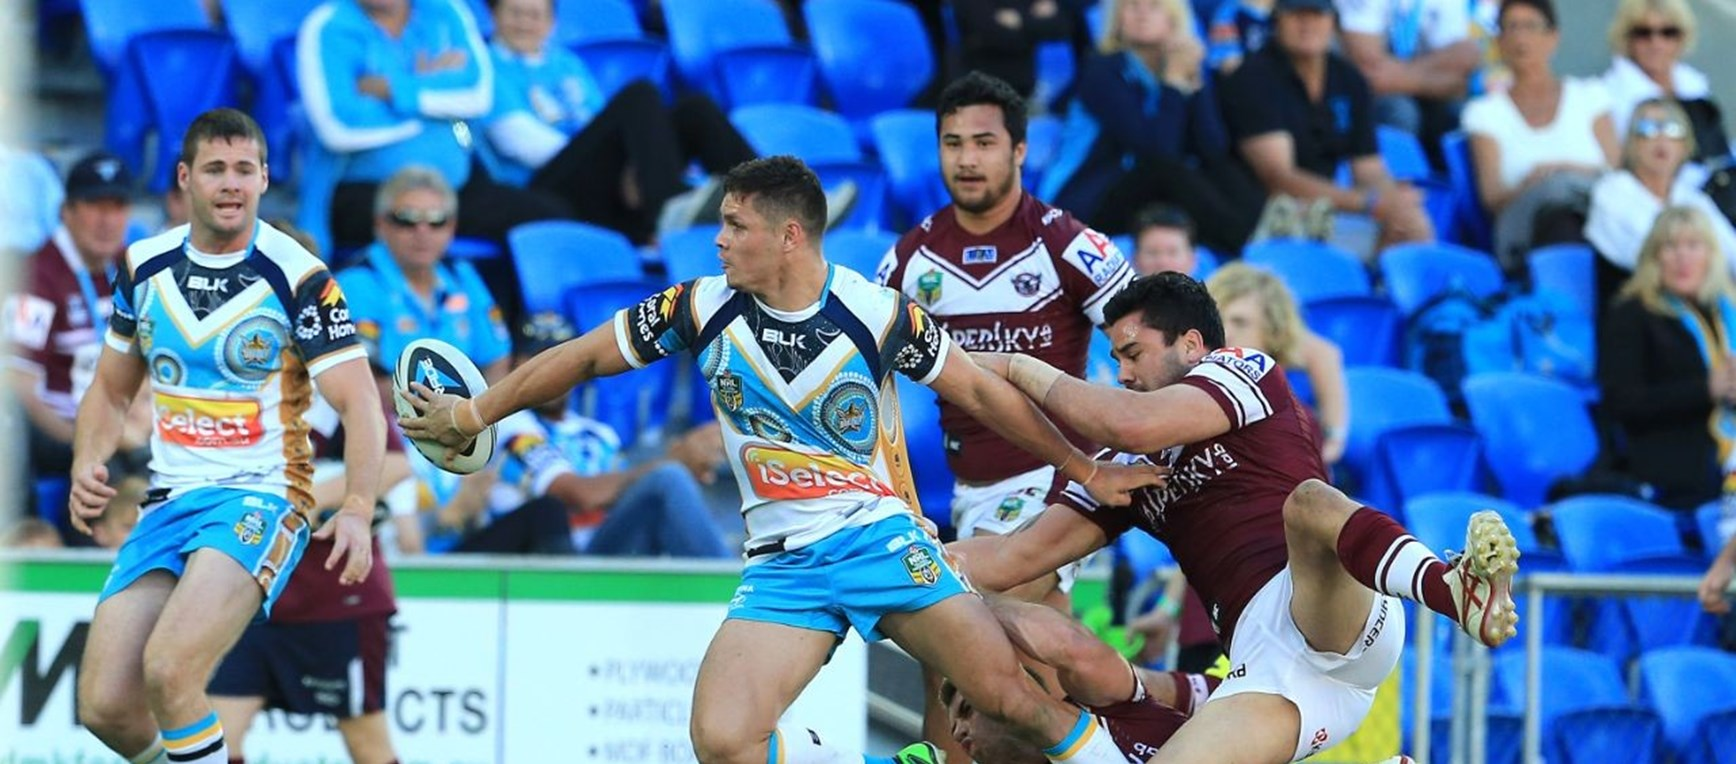 Titans v Sea Eagles Gallery